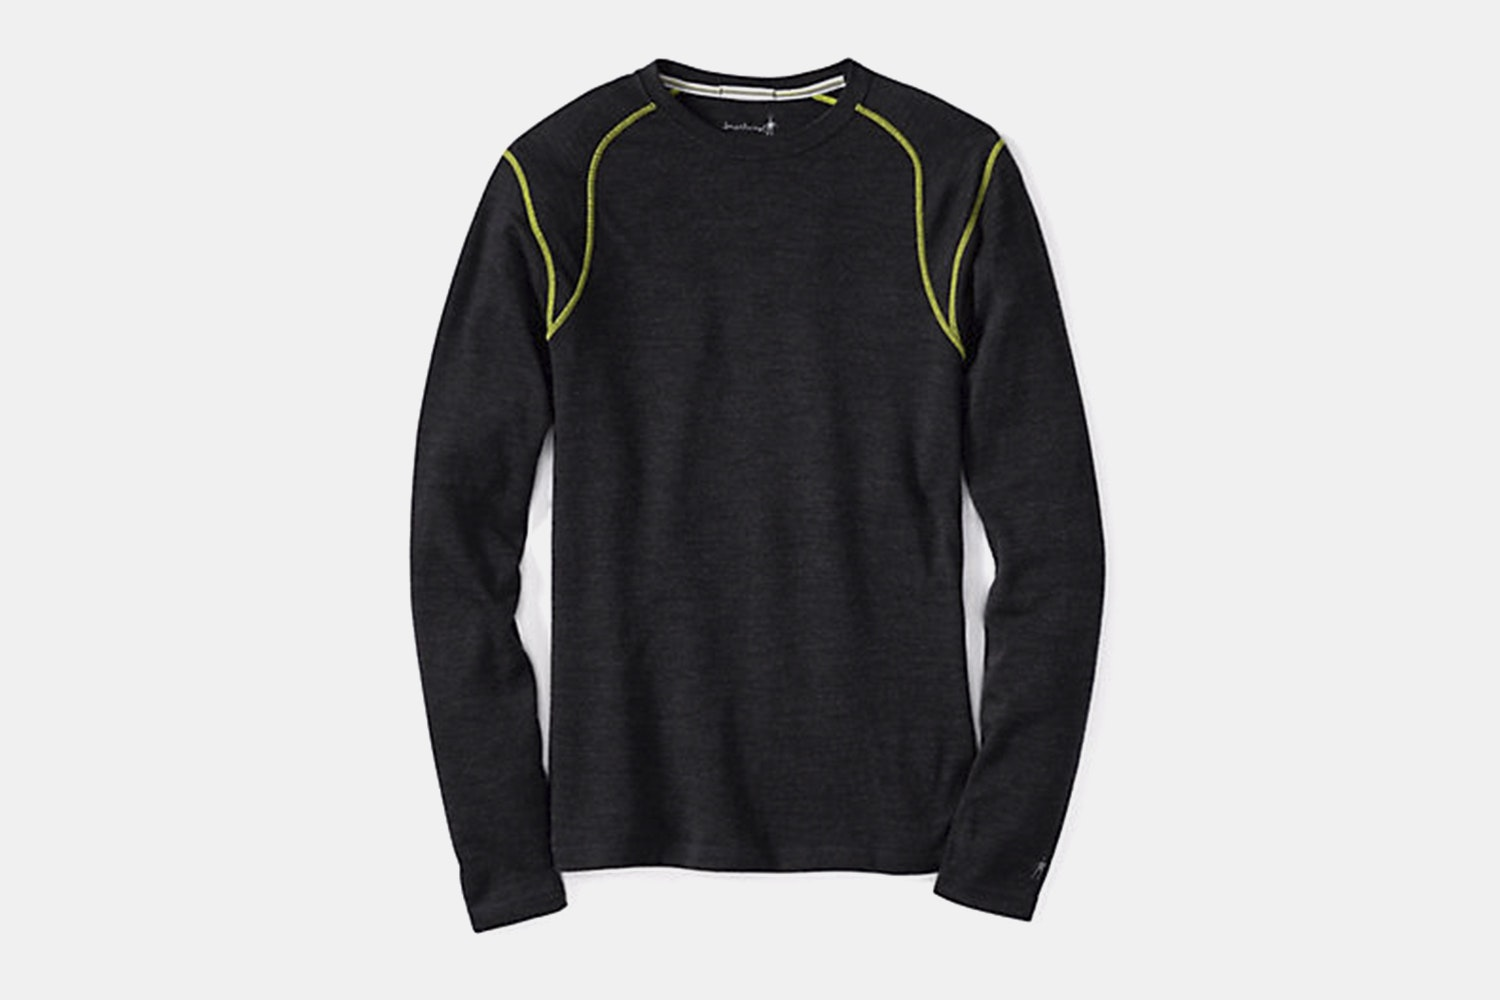 Men's, Charcoal Heather